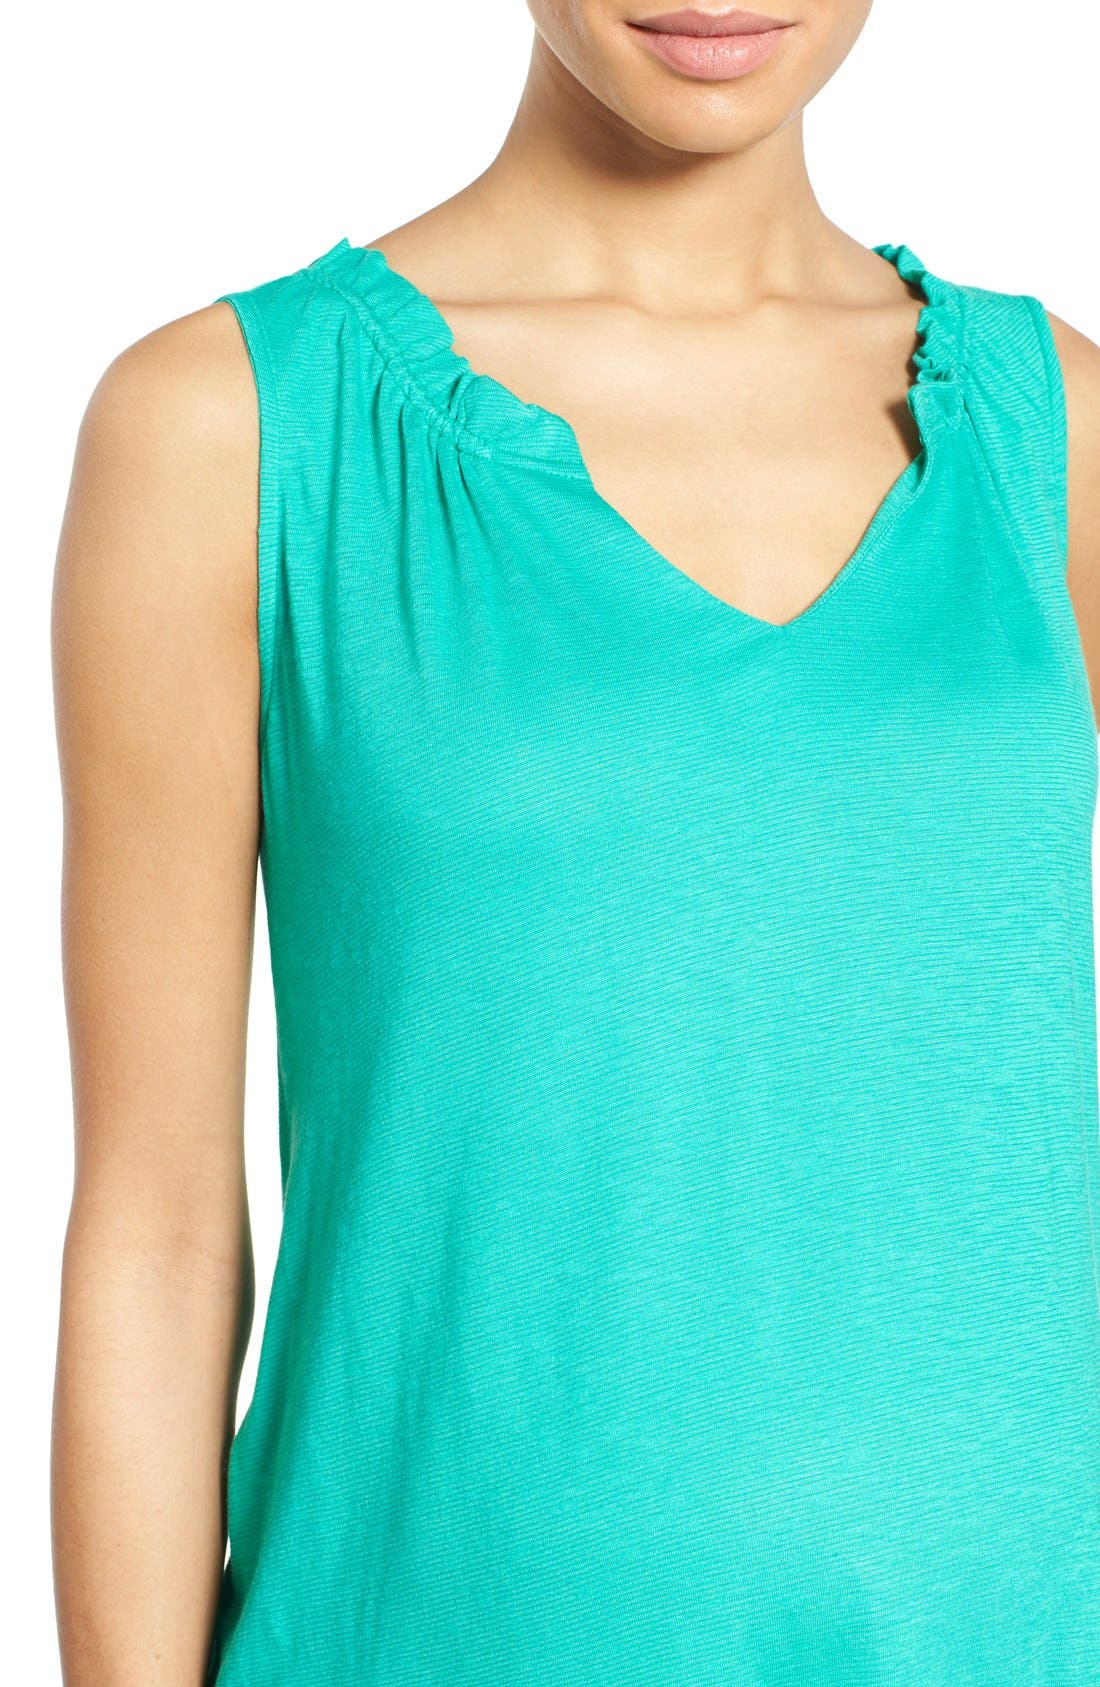 'Caitlin' Maternity Top,                             Alternate thumbnail 4, color,                             Green